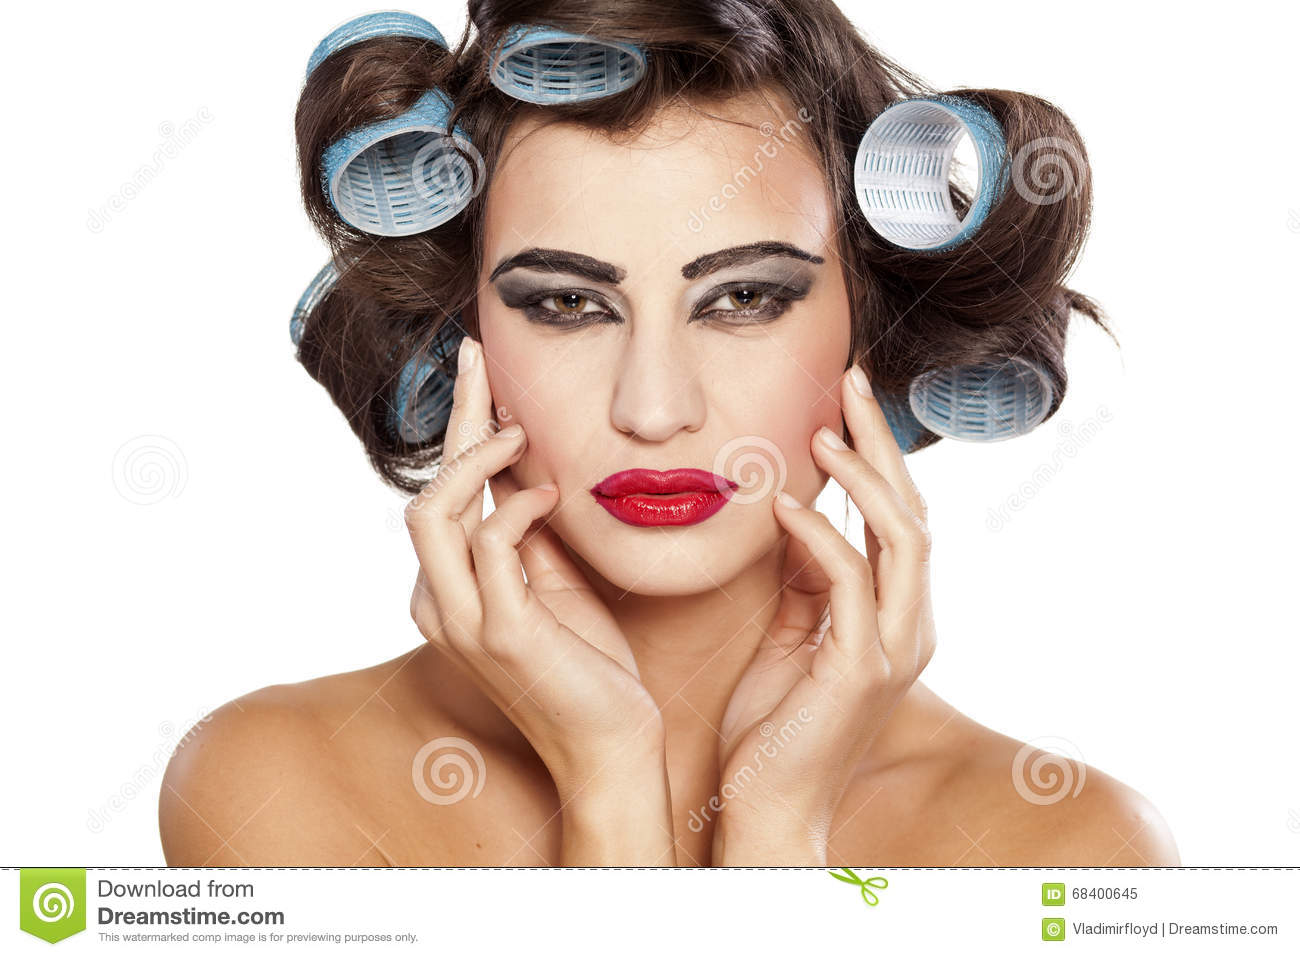 Naked girl in curlers